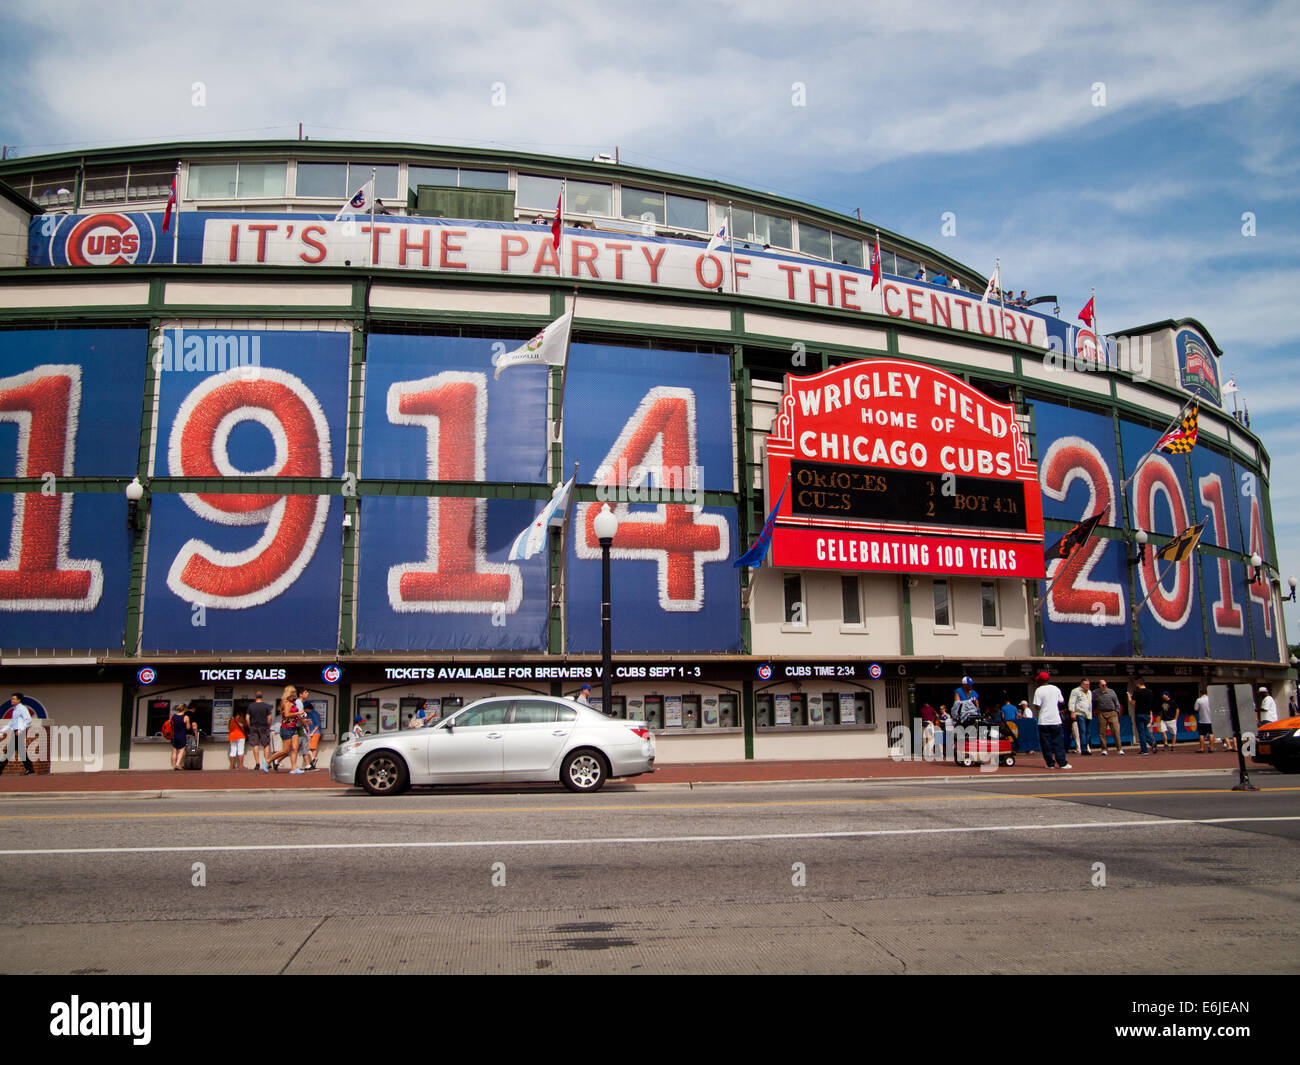 The famous Wrigley Field marquee and exterior of the baseball stadium in 2014, the 100th anniversary of the ballpark. - Stock Image